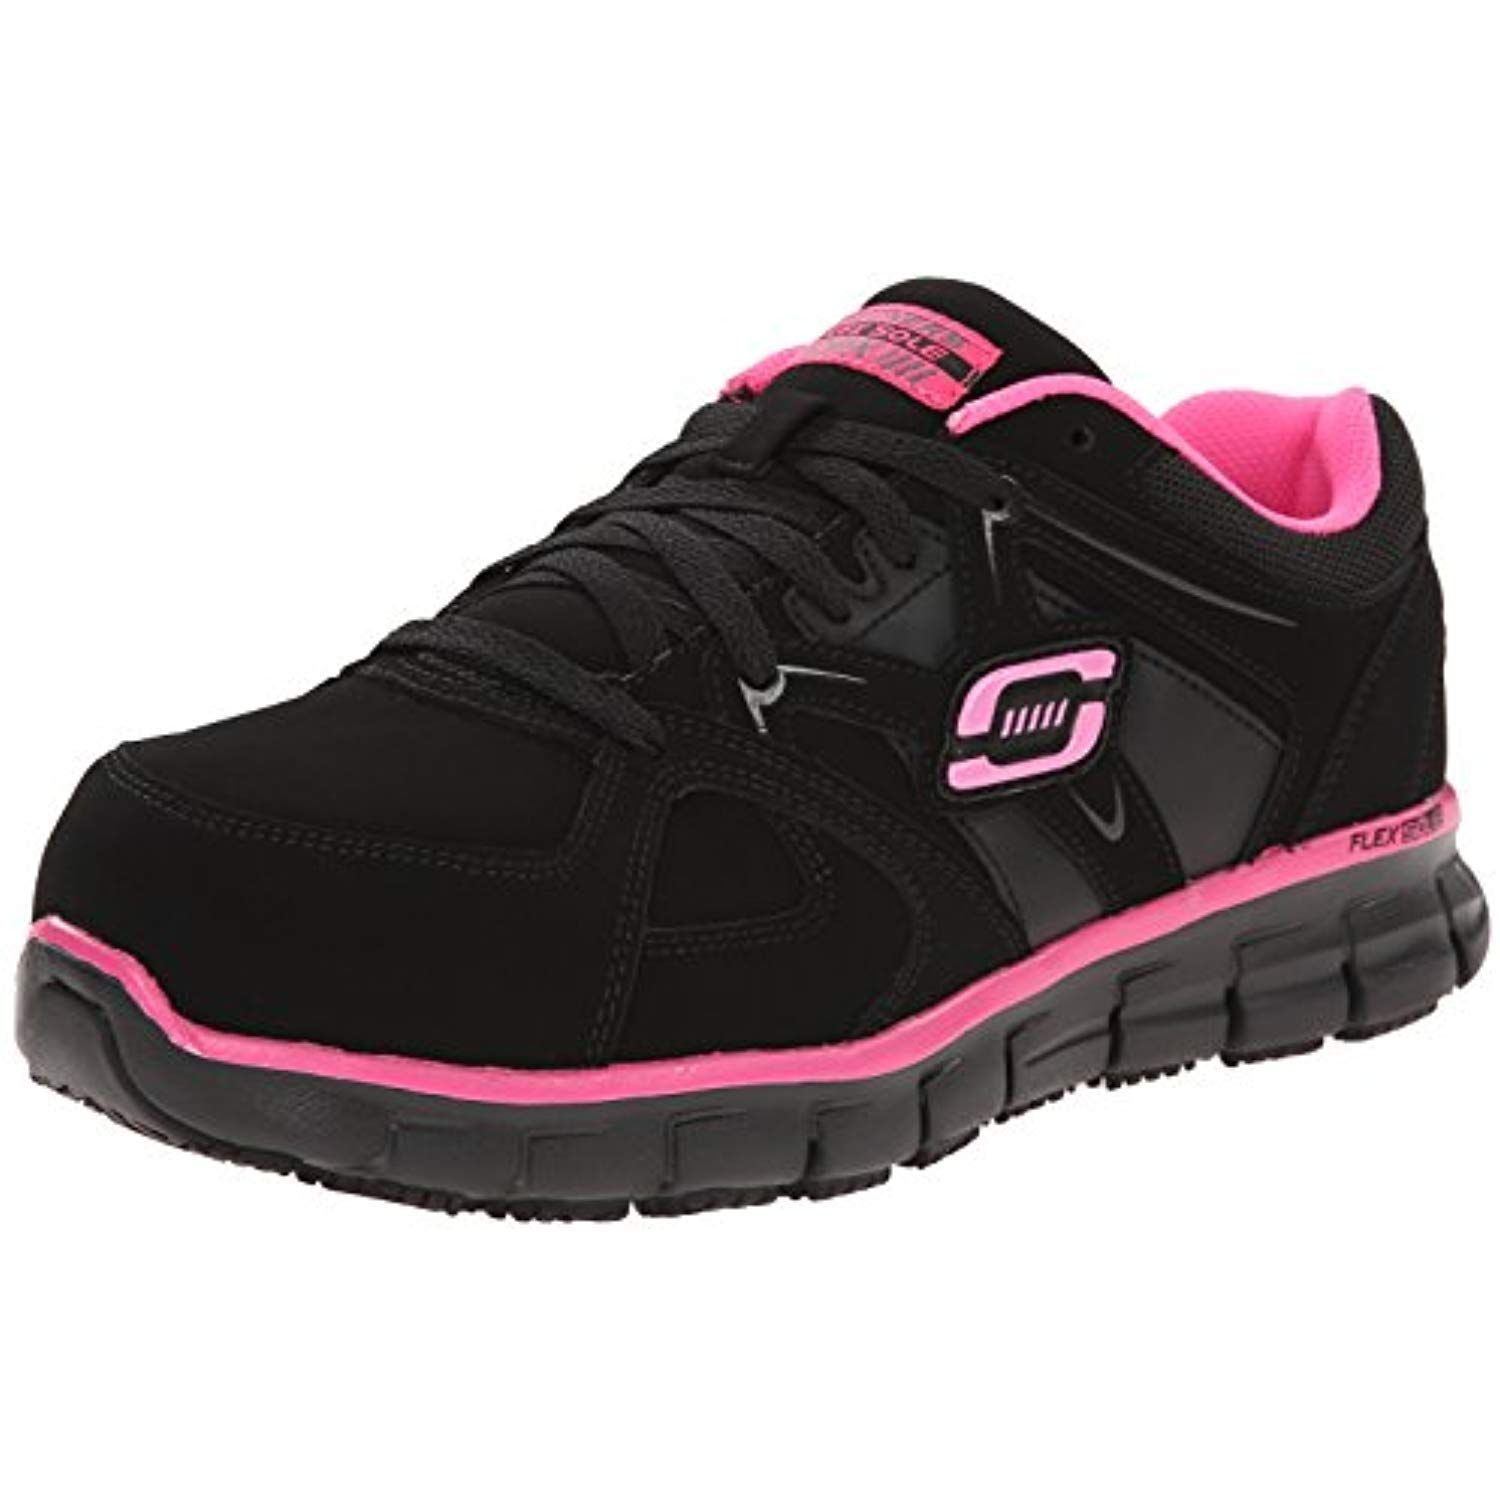 for Work Women's Synergy Sandlot Alloy Toe Laceup Work